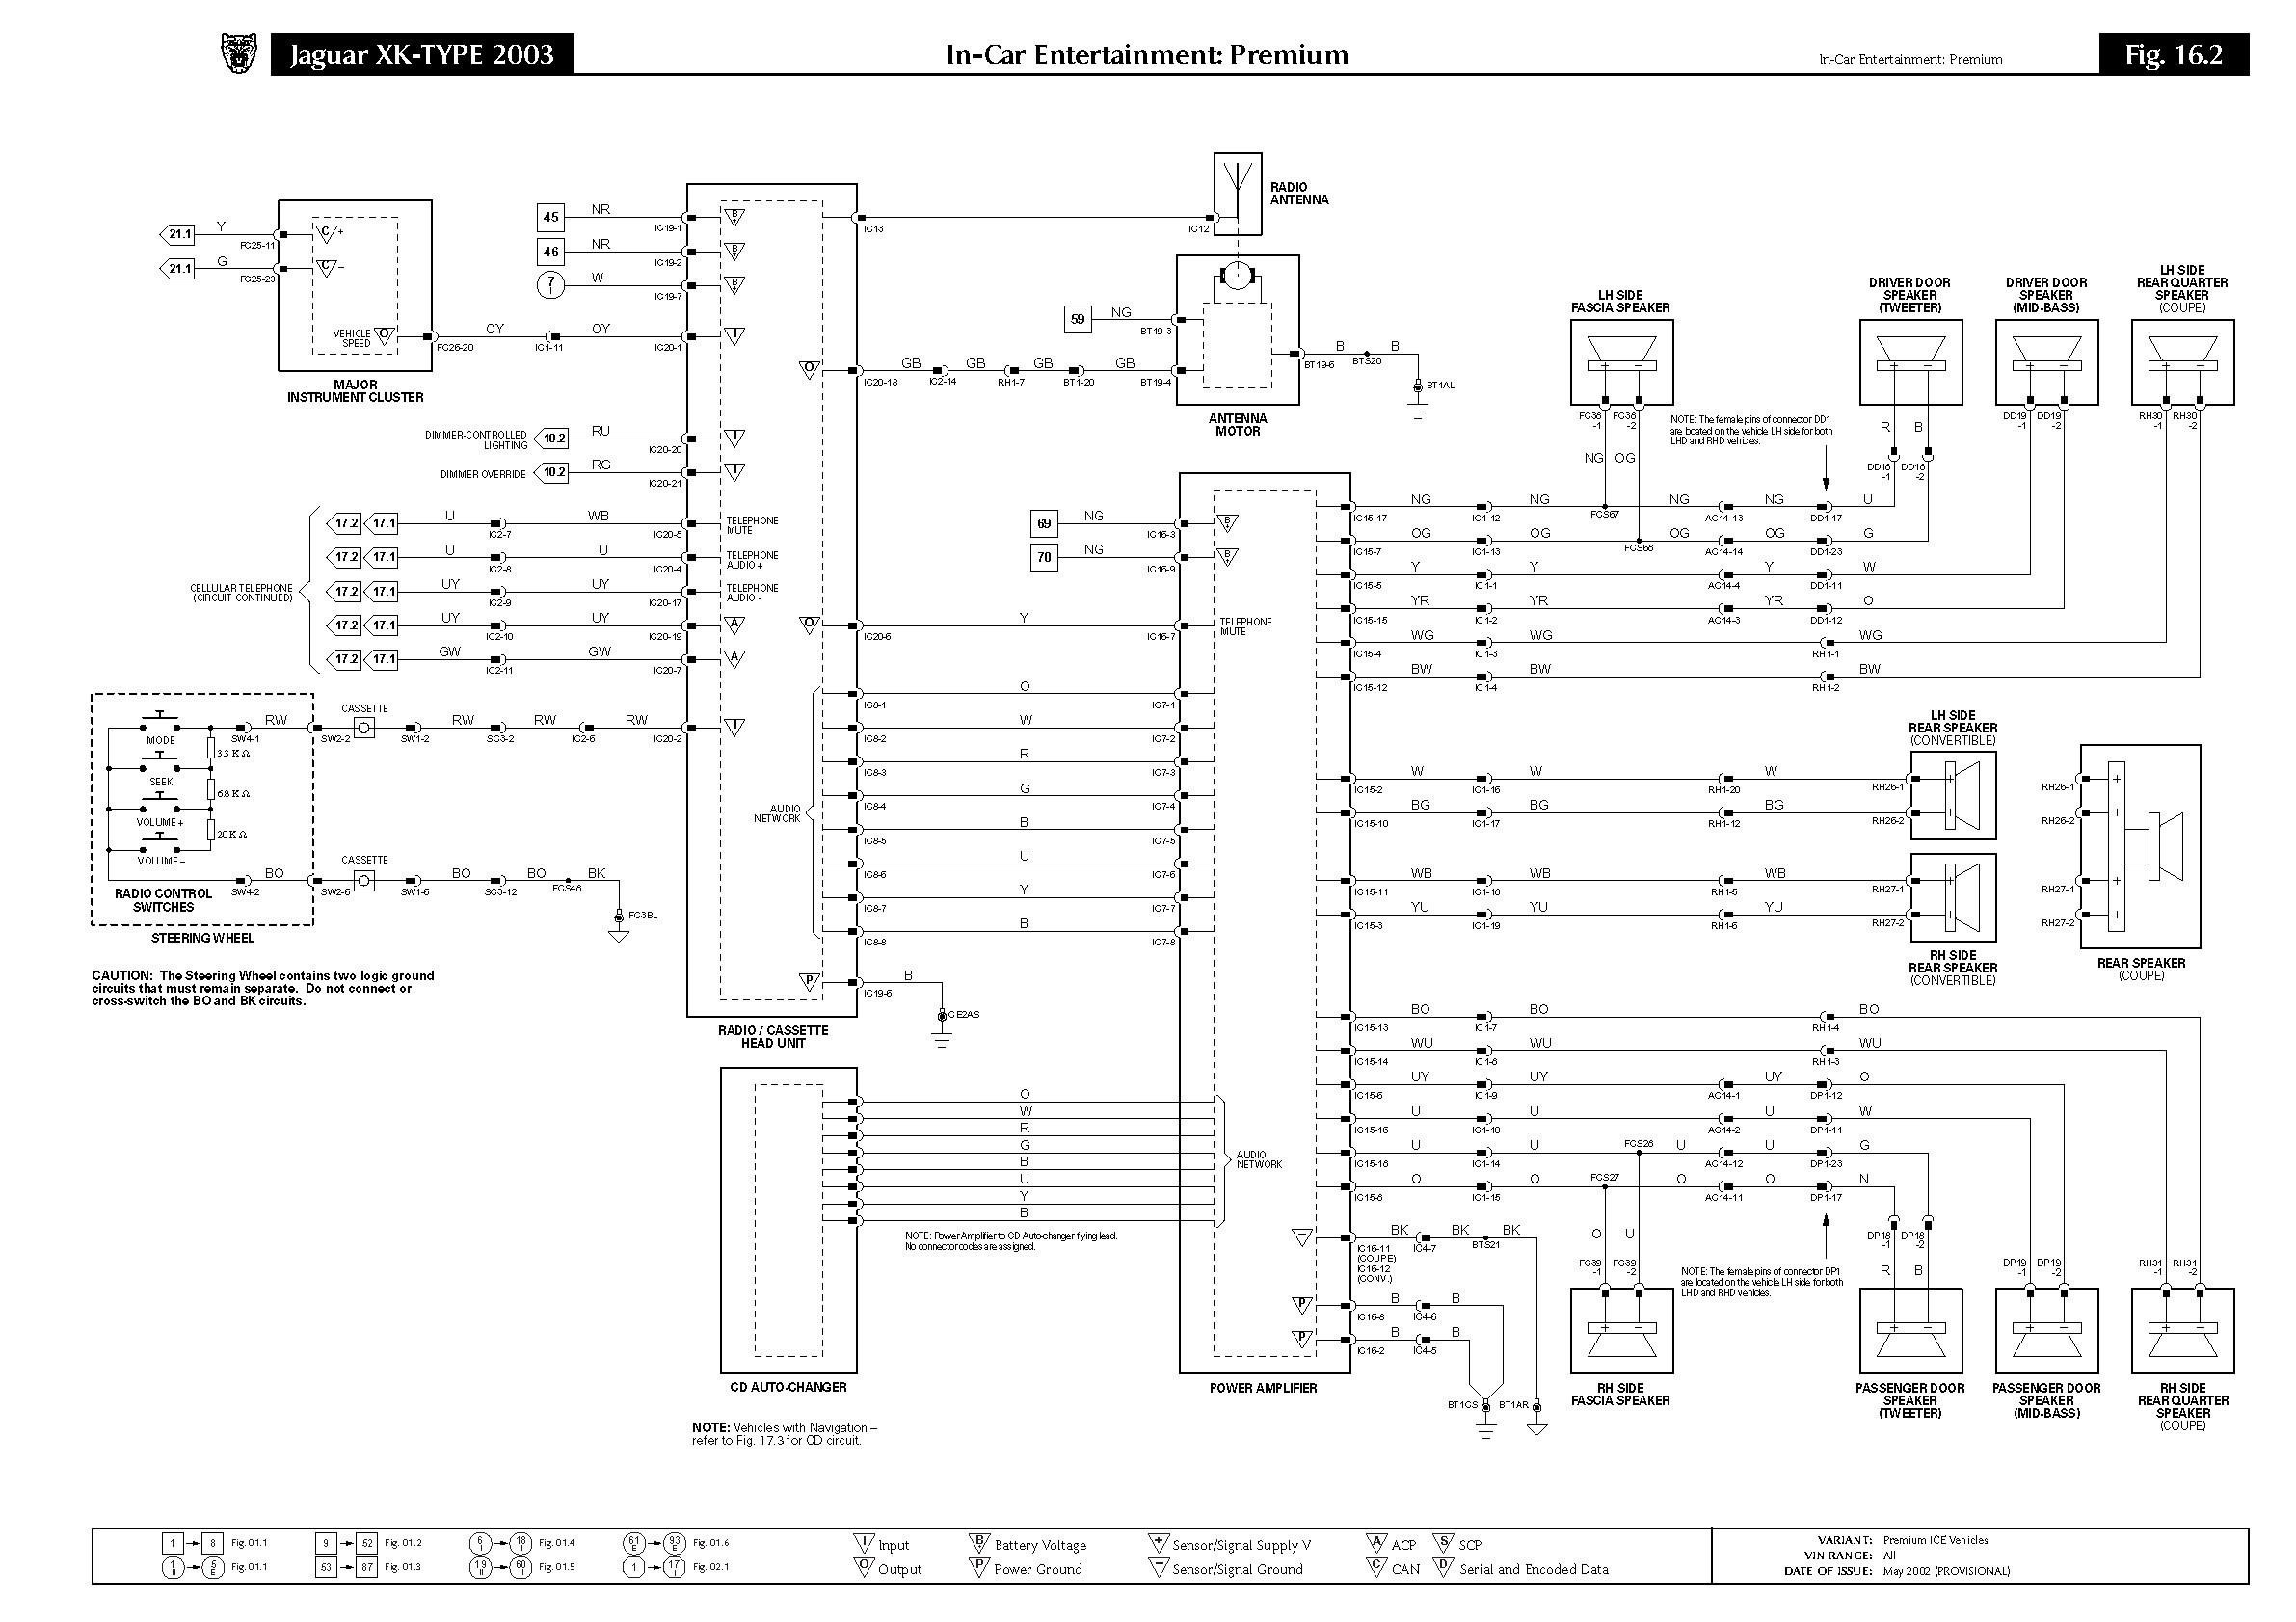 1988 Jaguar Xjs Wiring Diagram Jaguar Xj6 Electrical Wiring Diagram